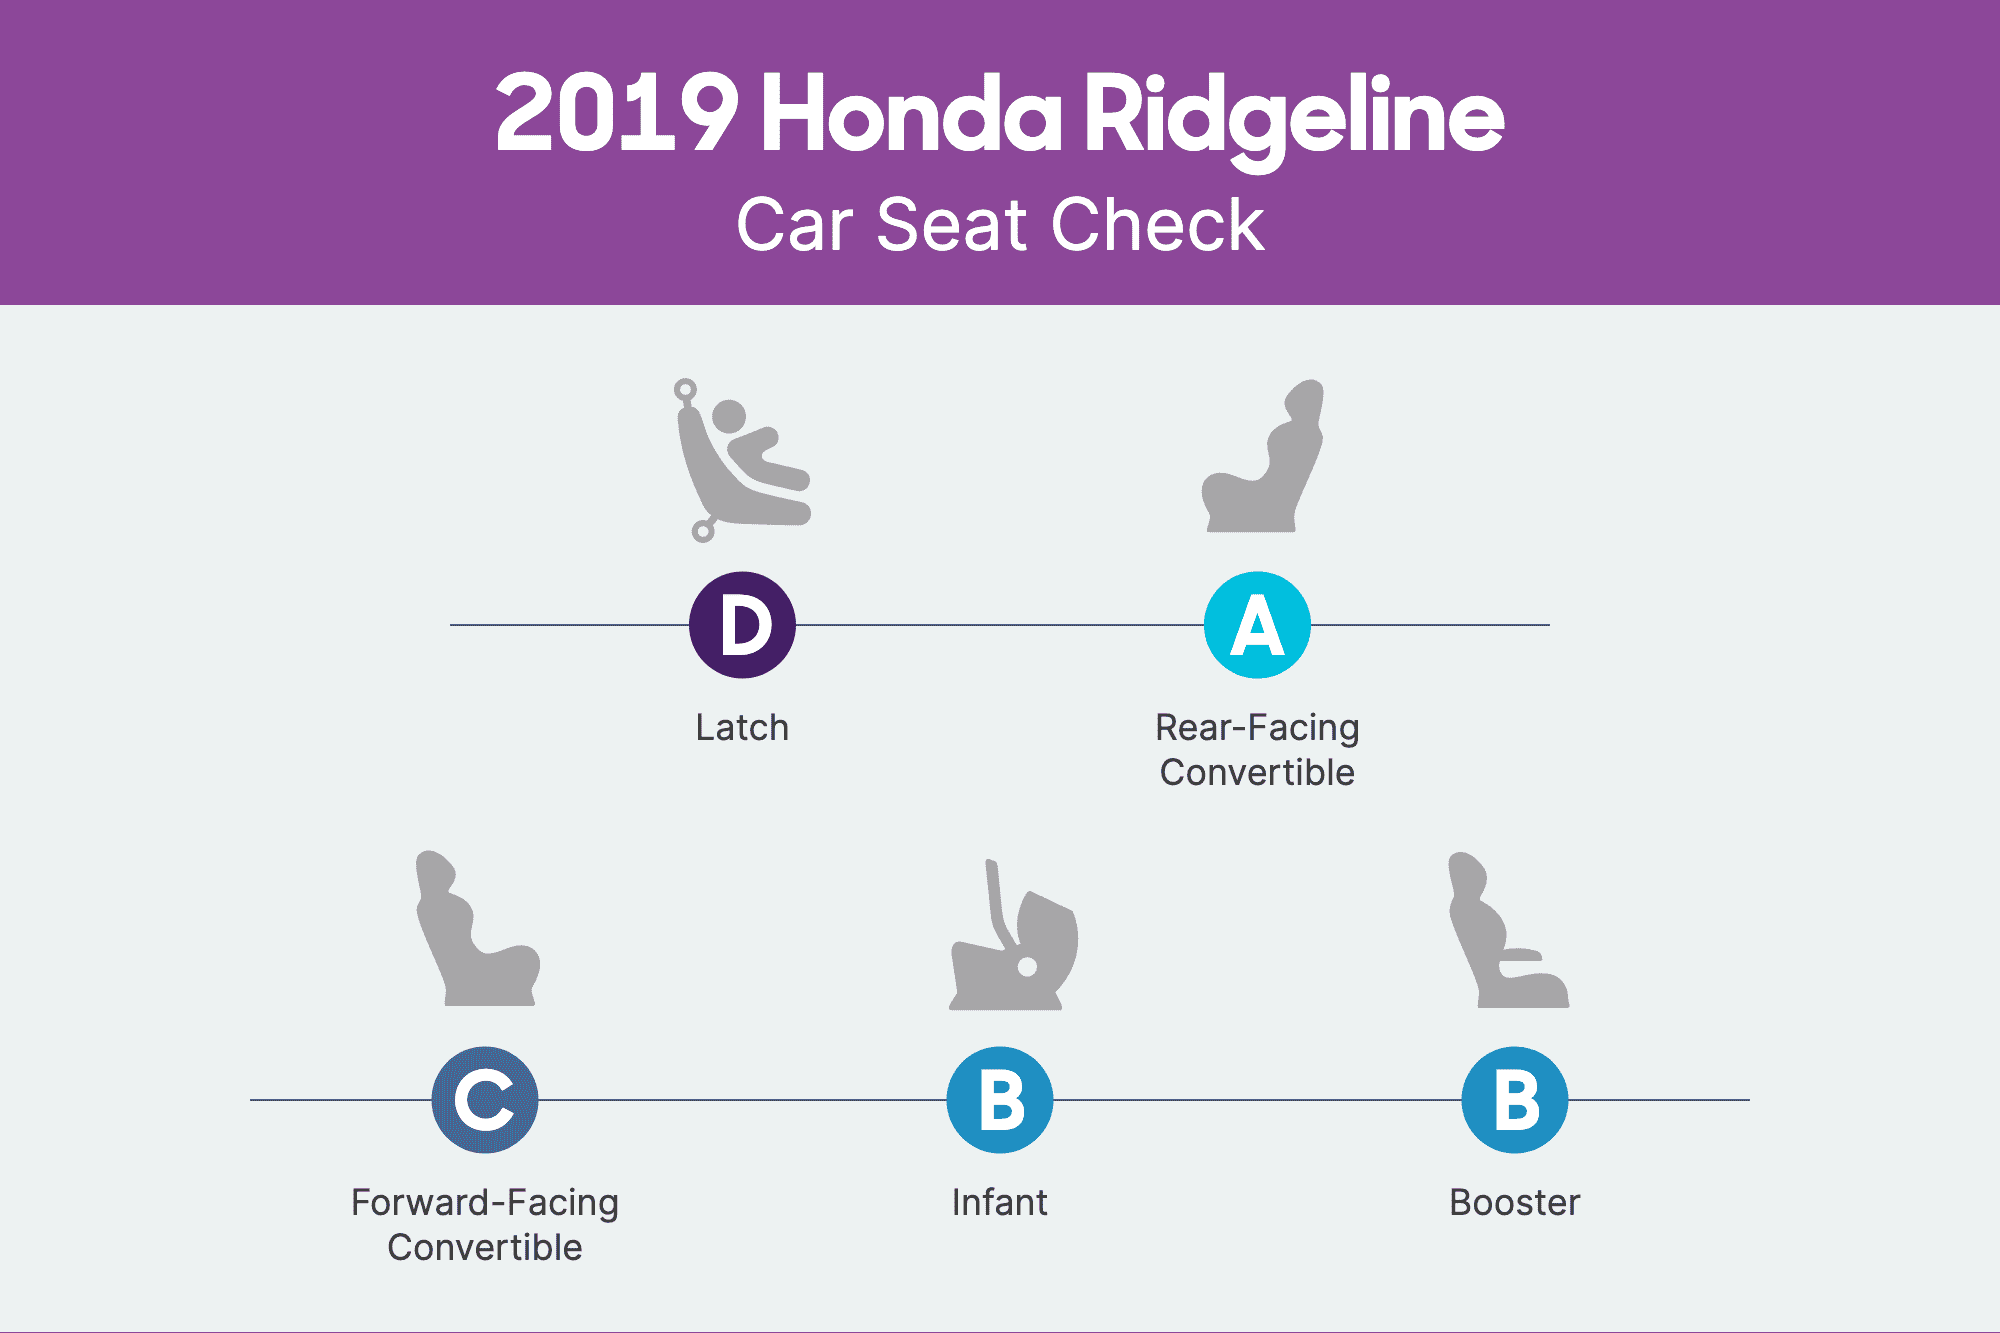 How Do Car Seats Fit in a 2019 Honda Ridgeline?